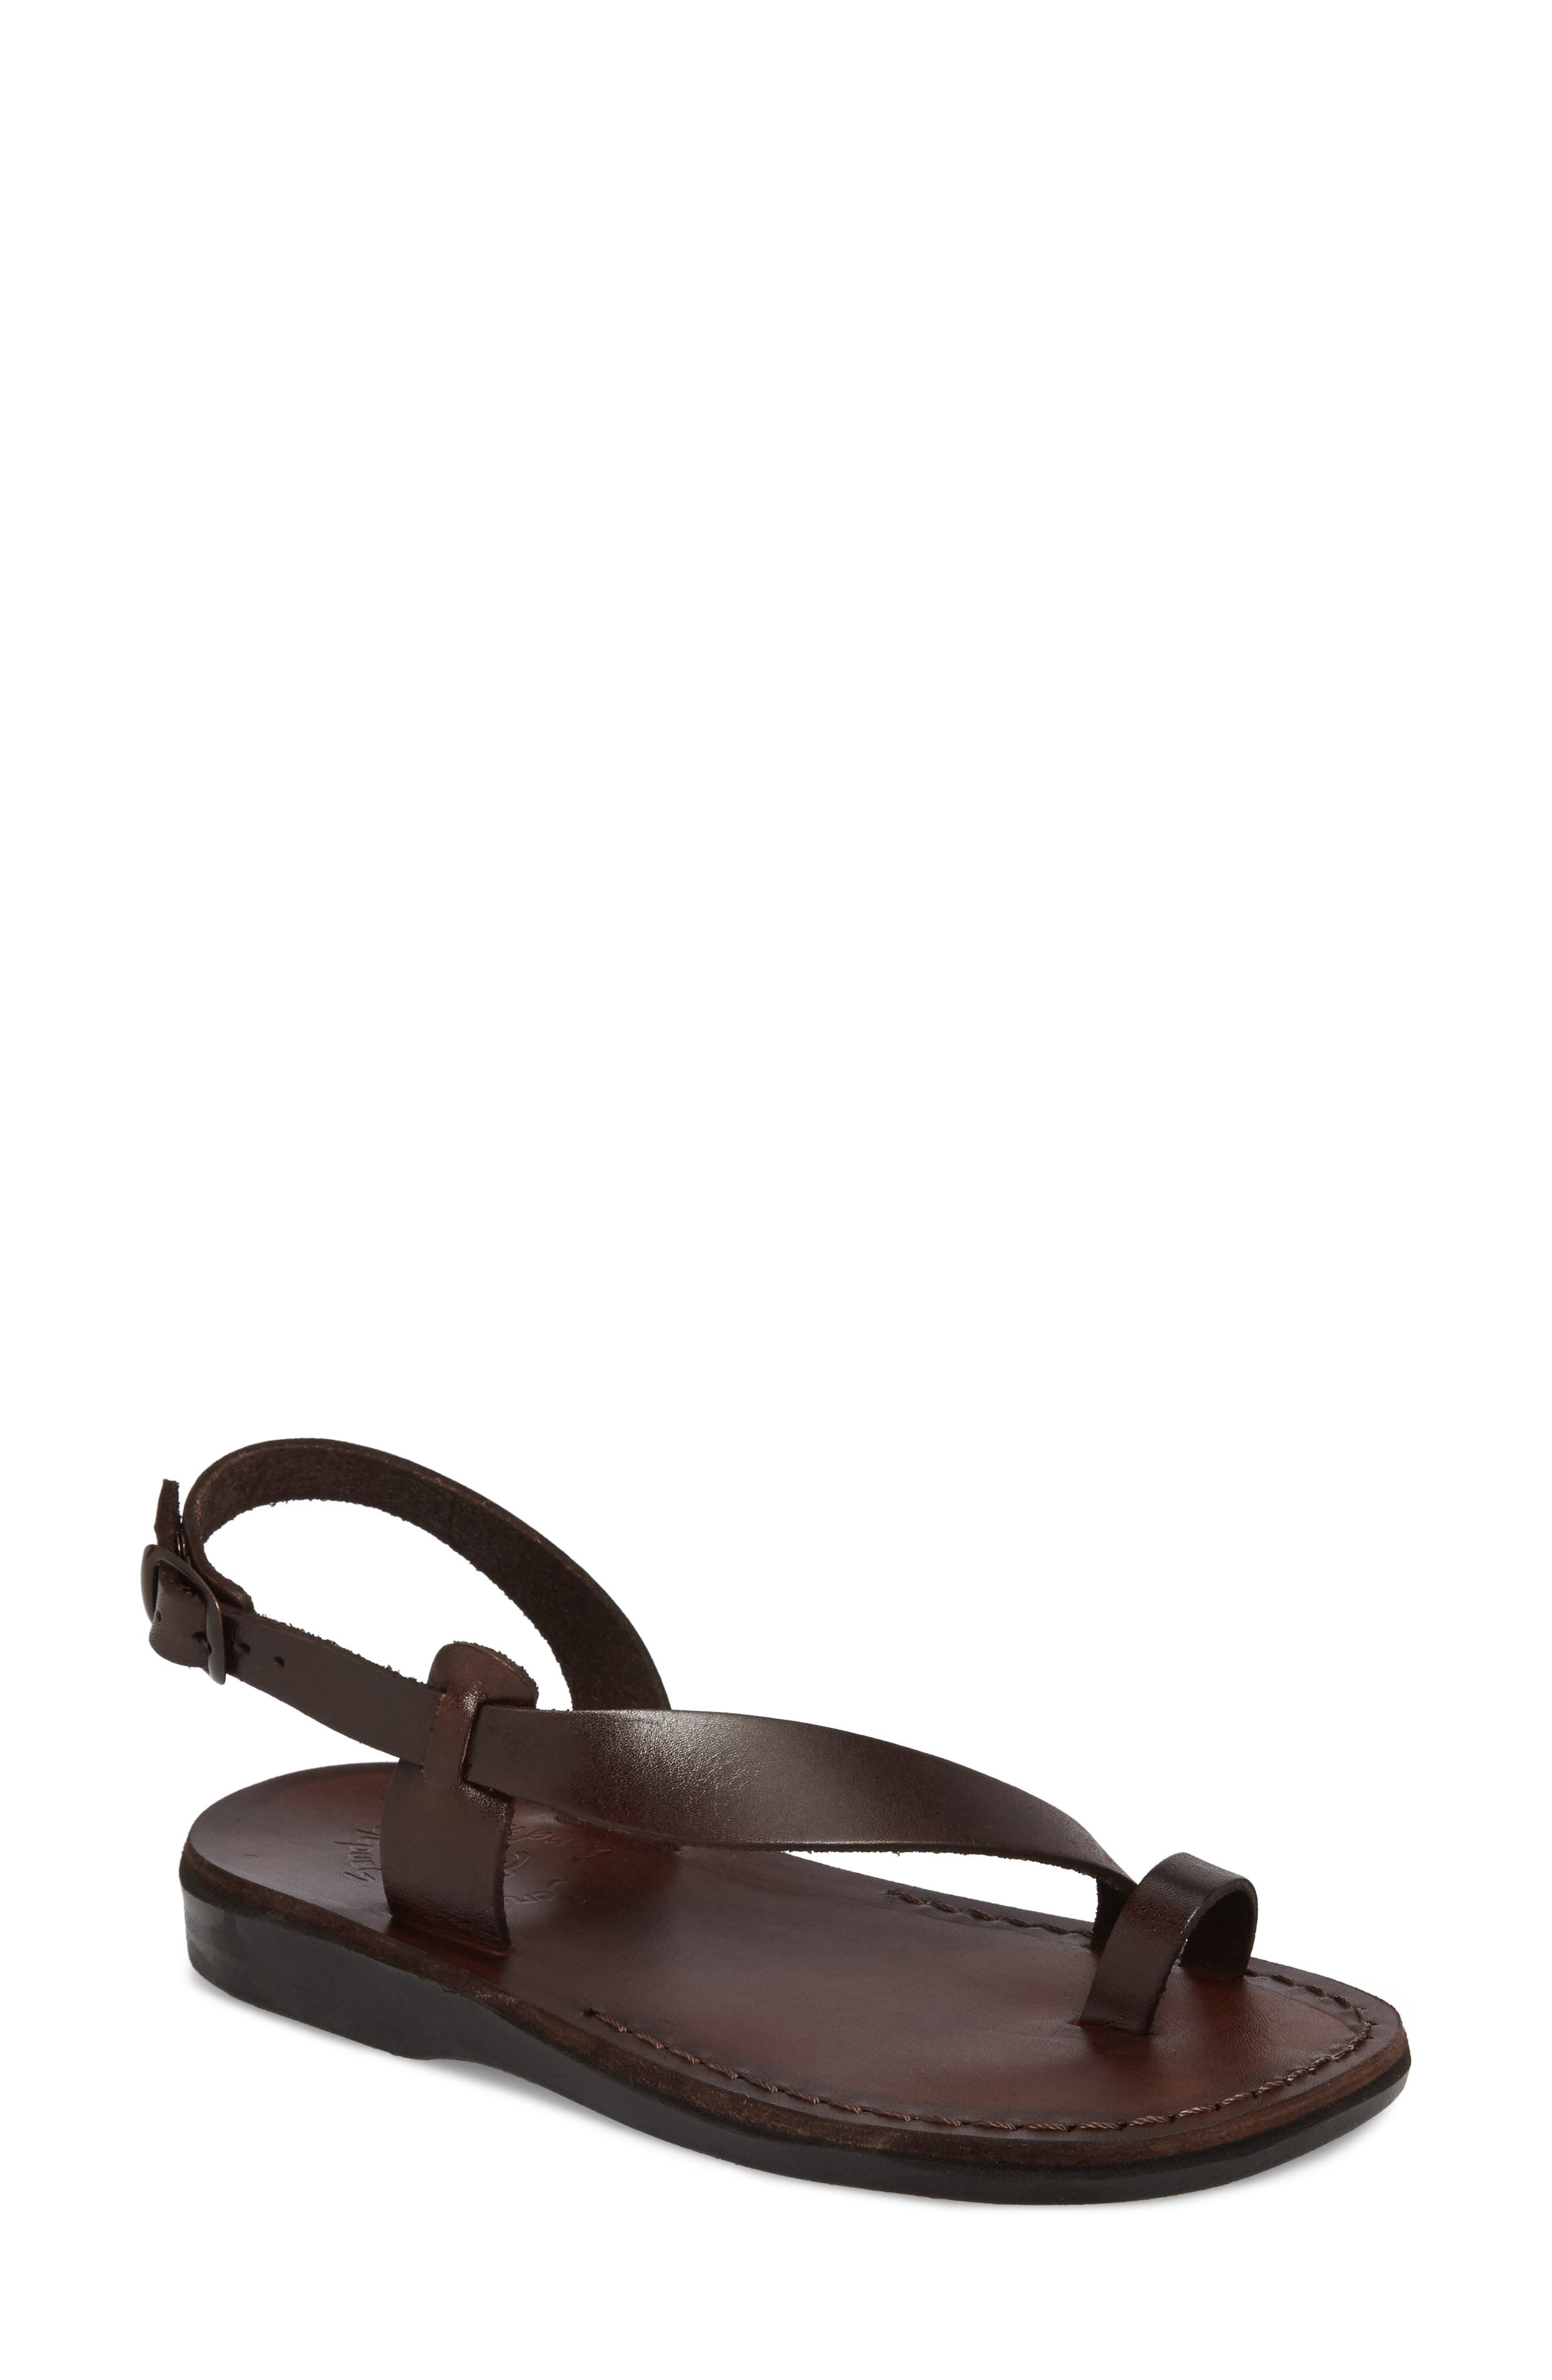 Mia Sandal,                         Main,                         color, Brown Leather